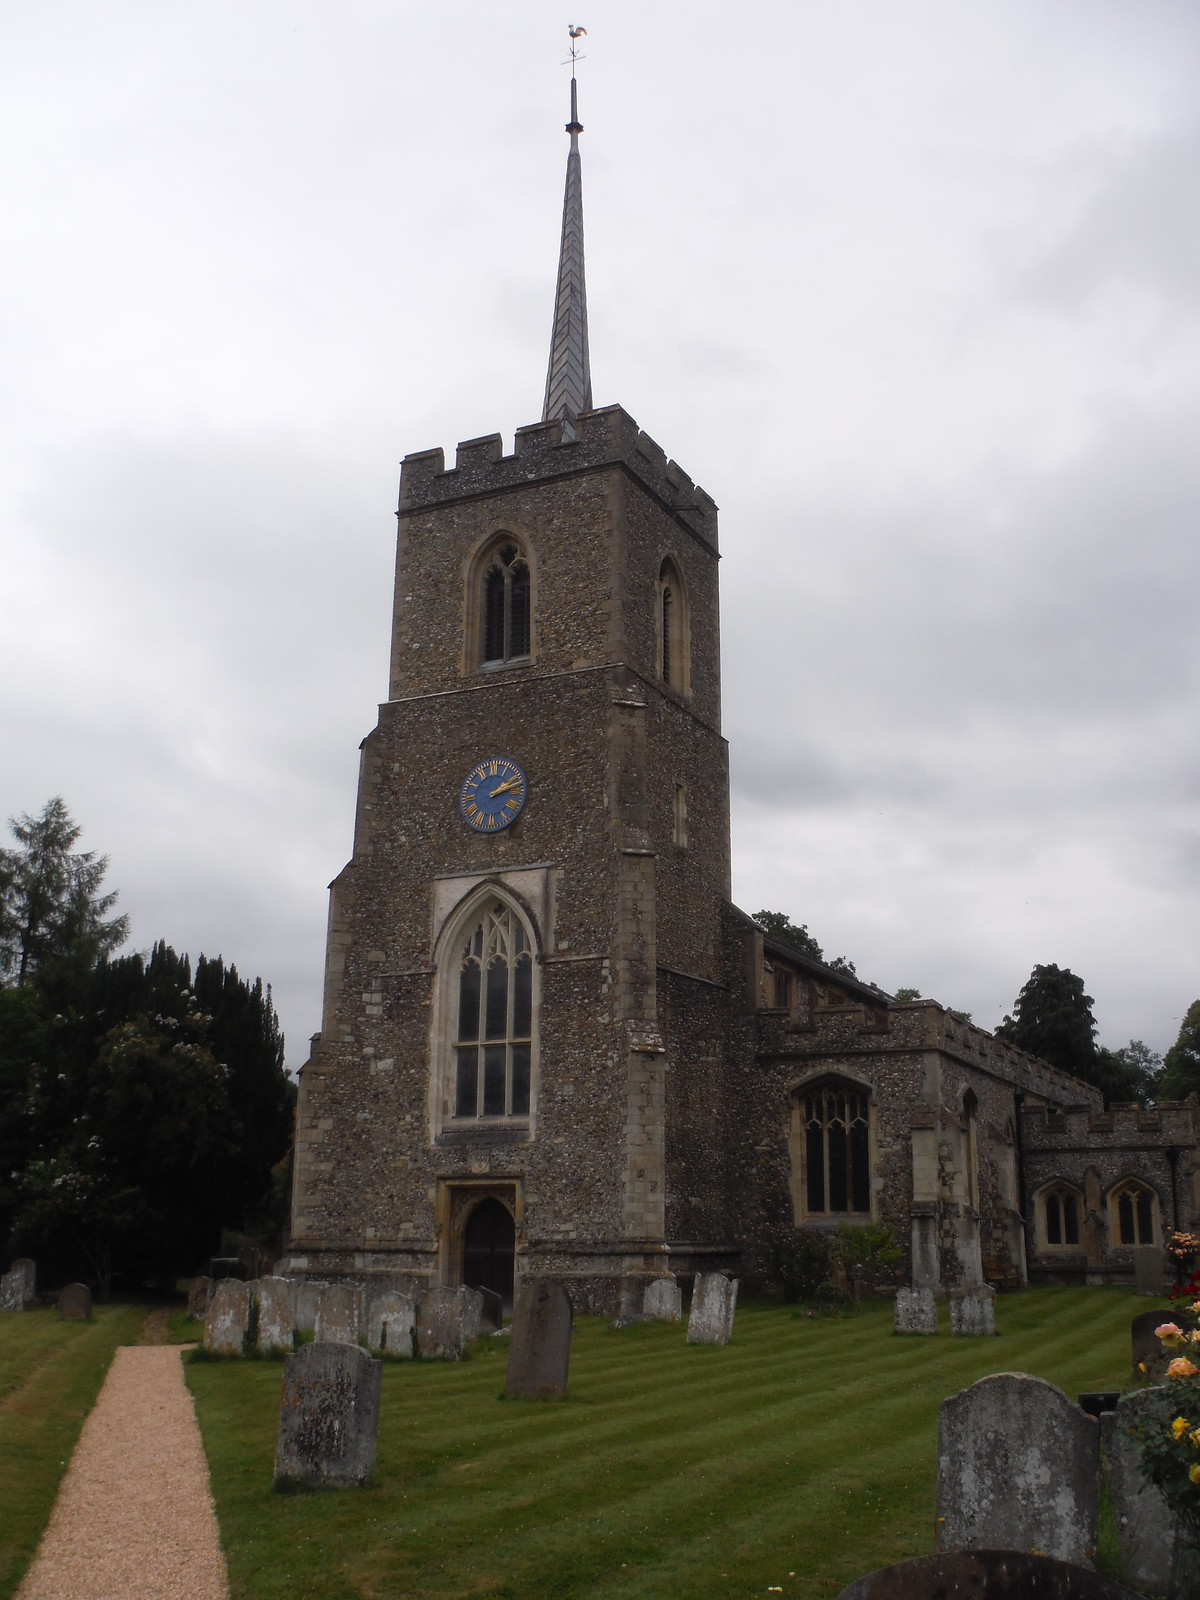 St. Andrew's Church, Much Hadham SWC Walk 210 - Sawbridgeworth to Bishop's Stortfort (via Henry Moore Foundation) [Much Hadham Church Loop]